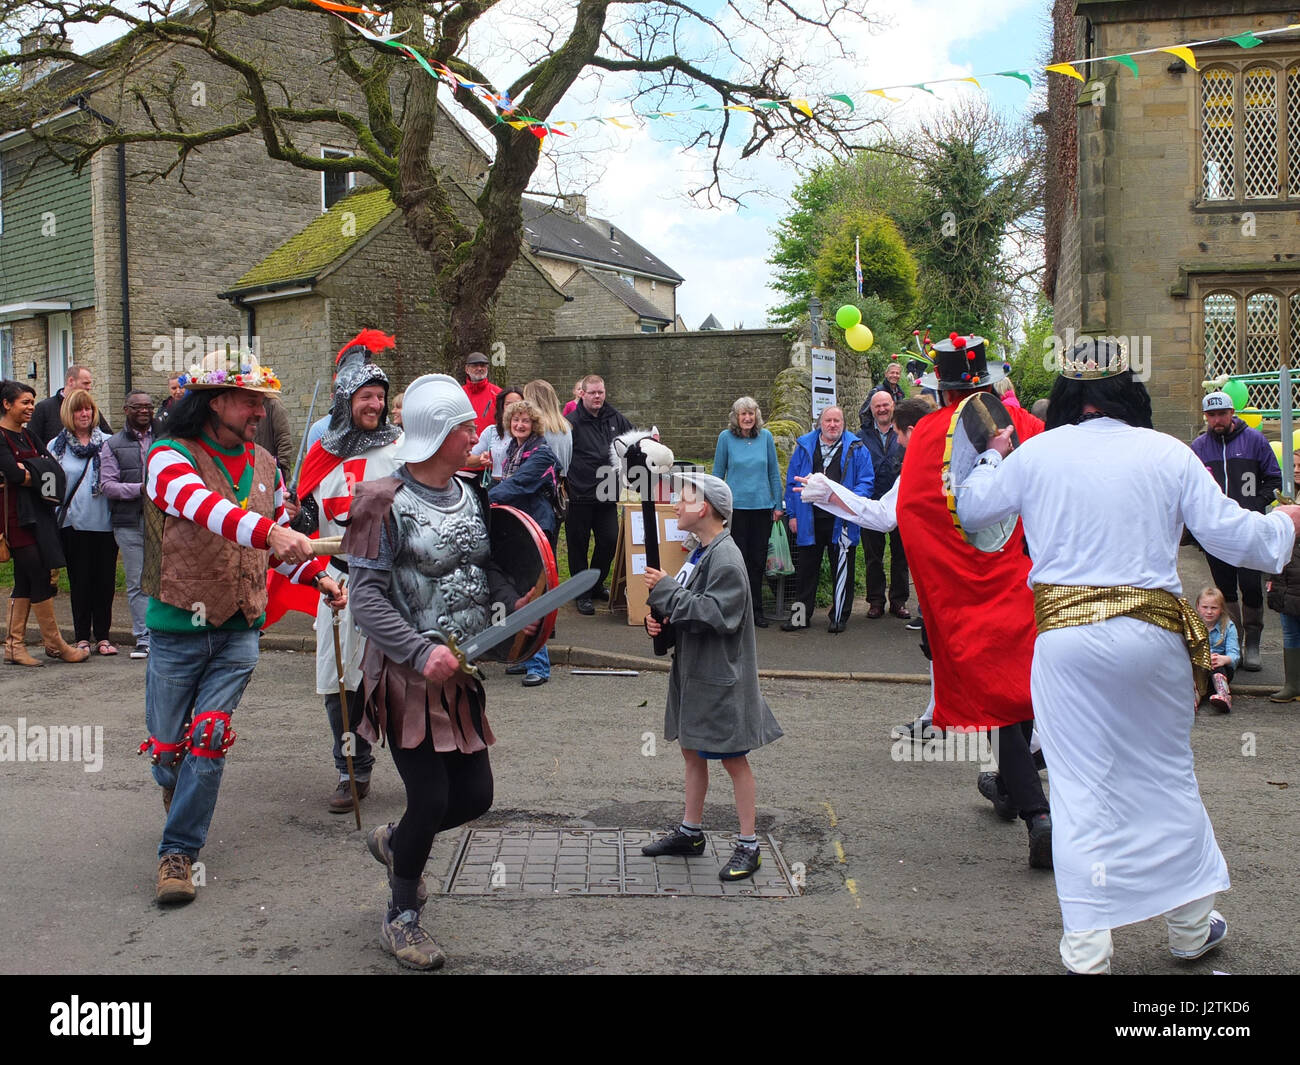 Annual May Day carnival at the village of  Ashover, near Chesterfield, Derbyshire. Mummers play being performed Stock Photo